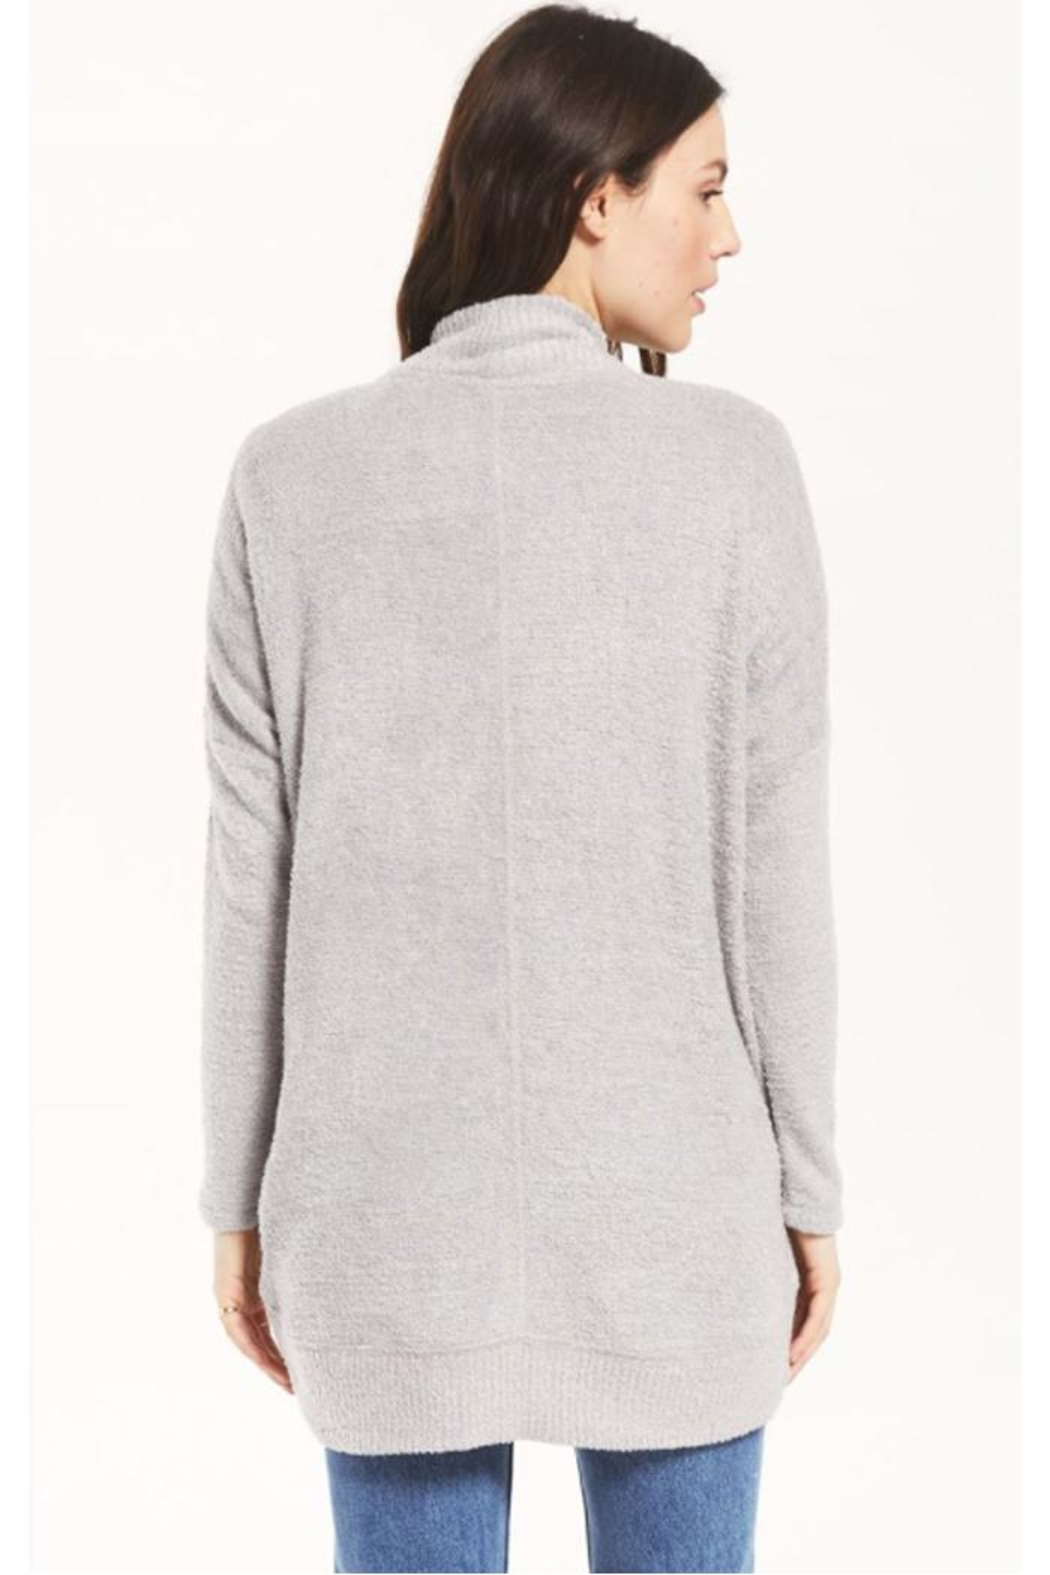 z supply Cozy Open Cardigan - Side Cropped Image